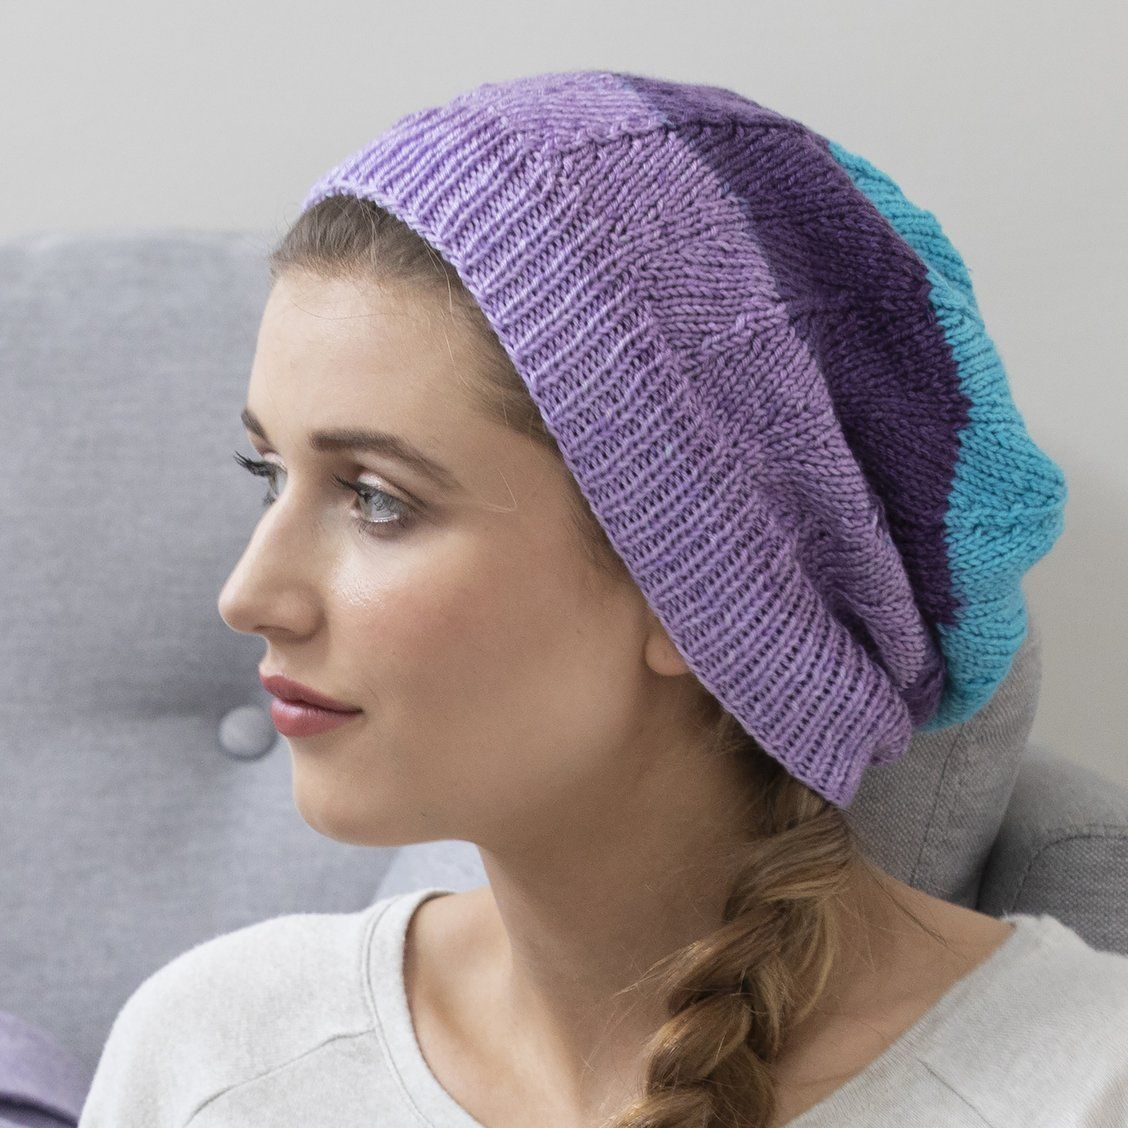 Knitting Patterns Galore - Slouchy Chevron Hat | Knit or ...